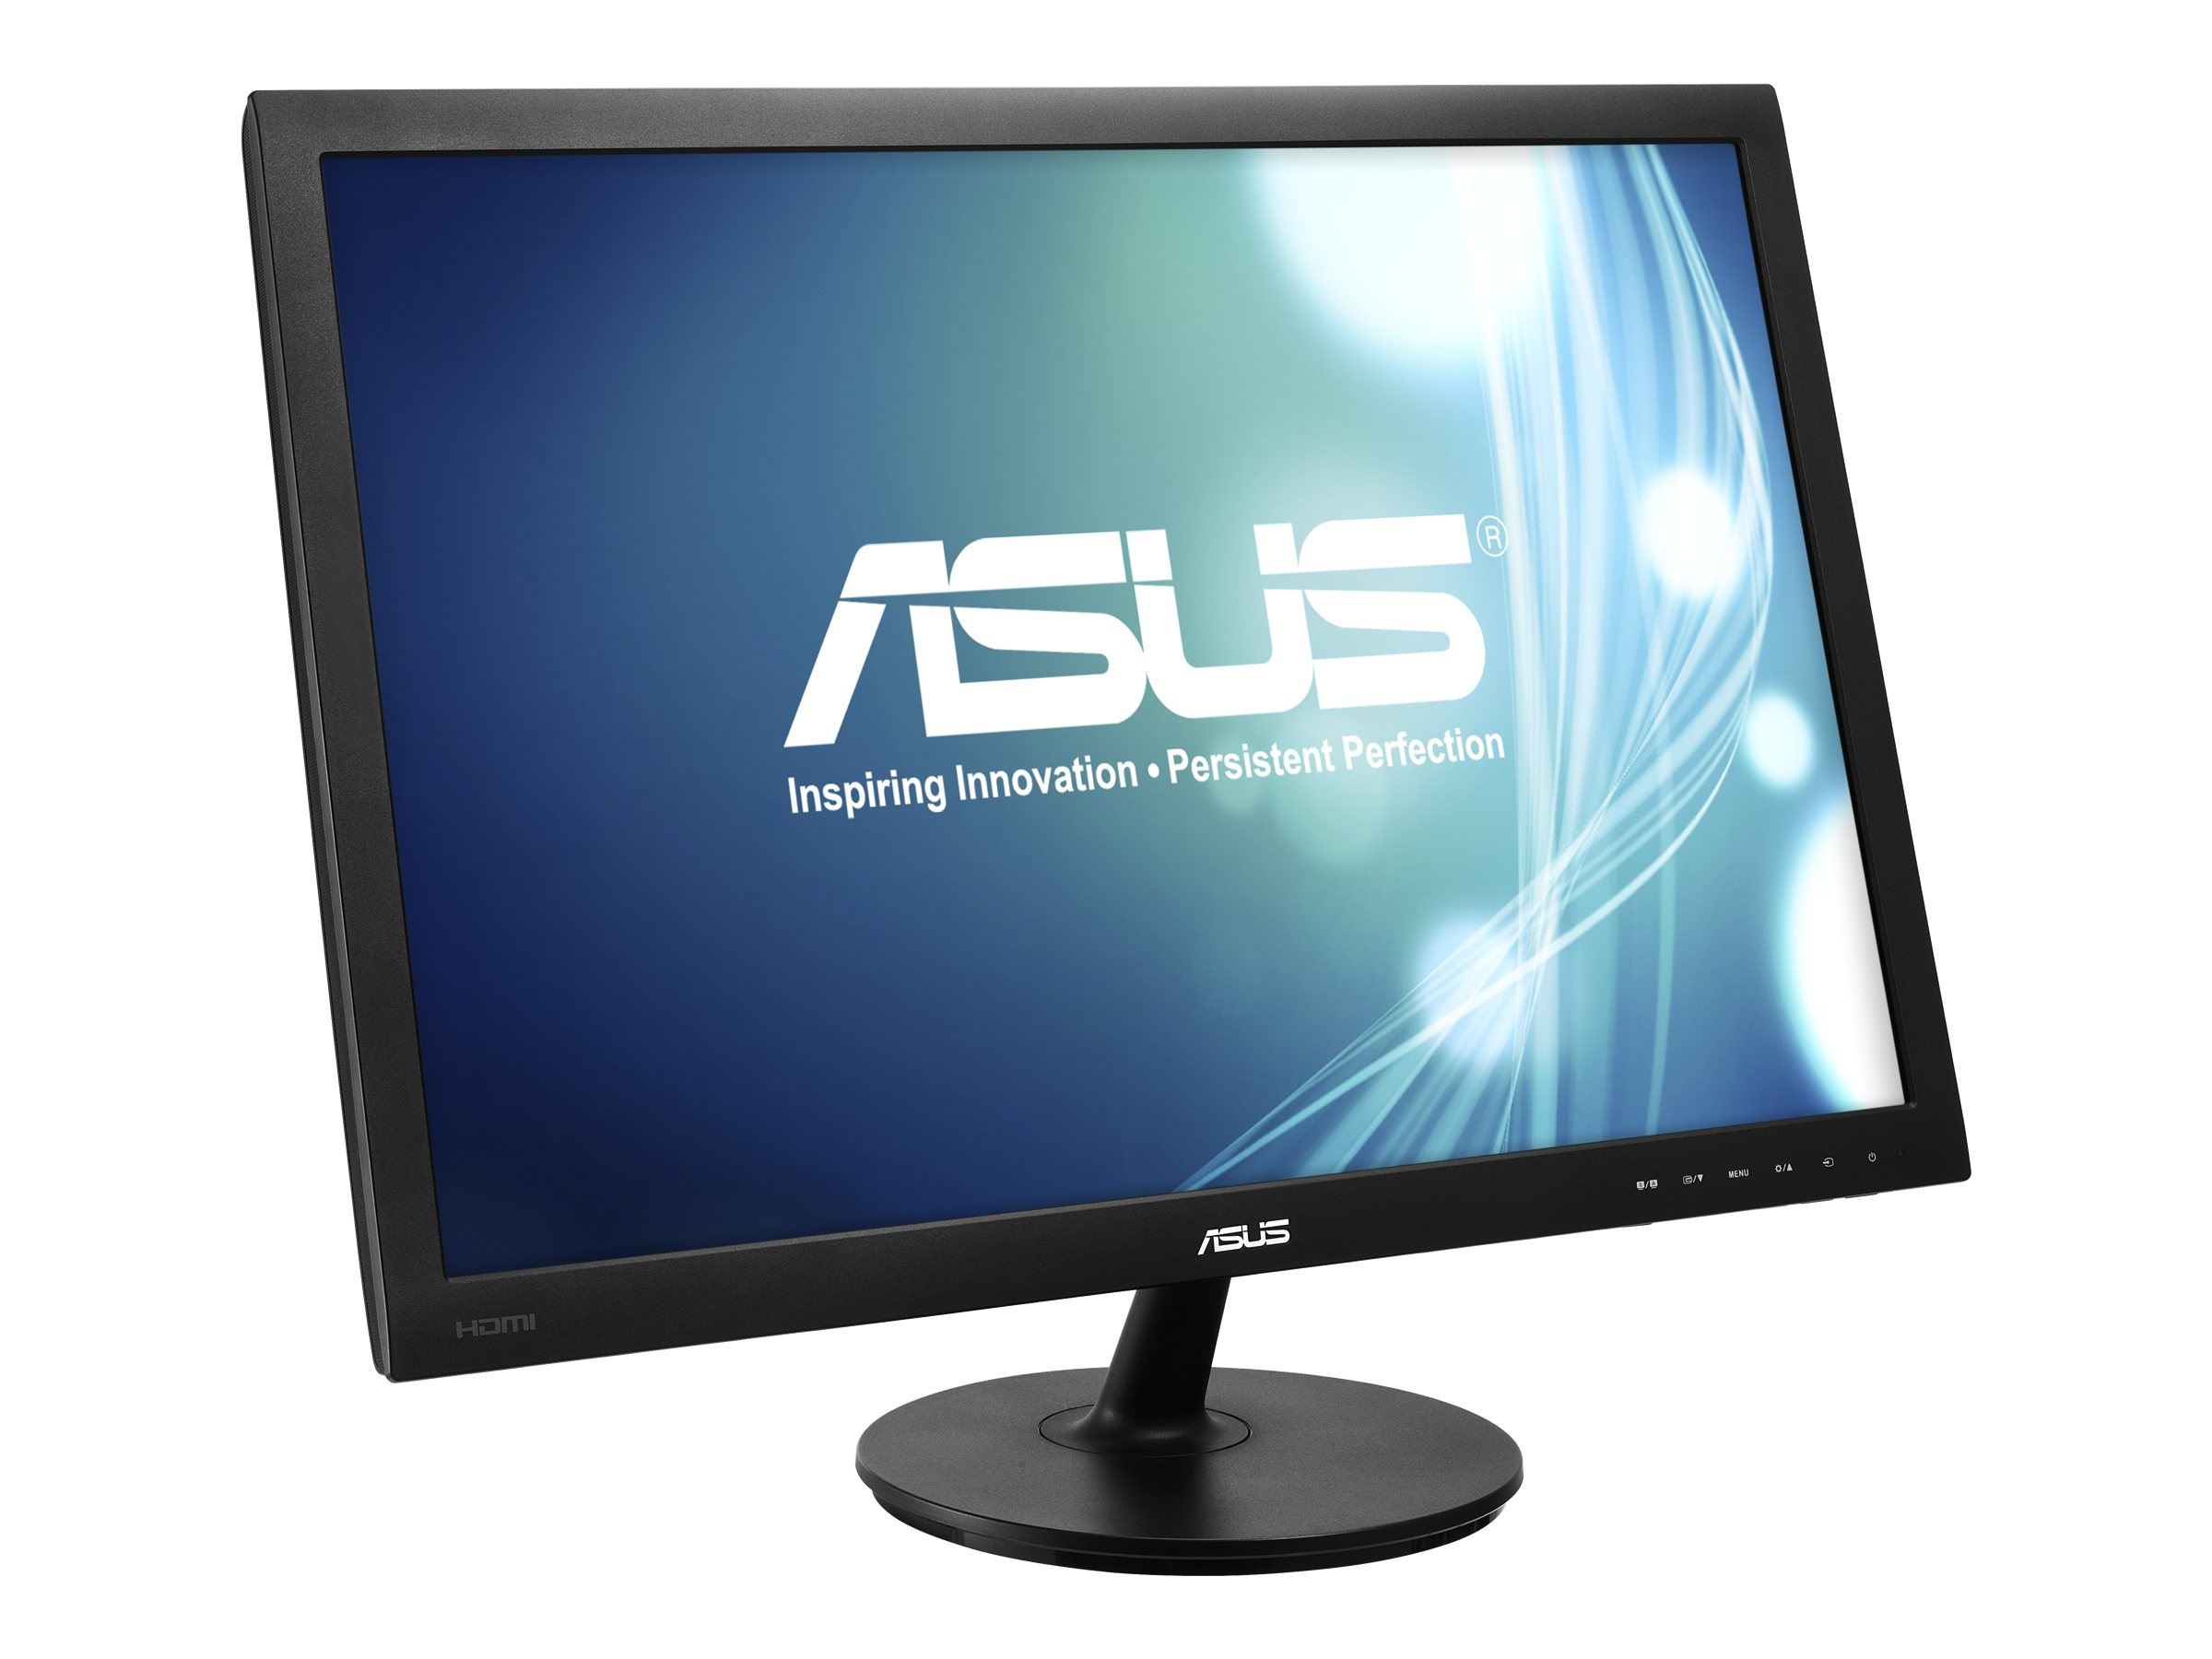 Asus 24 VS24AH-P Full HD LED-LCD Monitor, Black, VS24AH-P